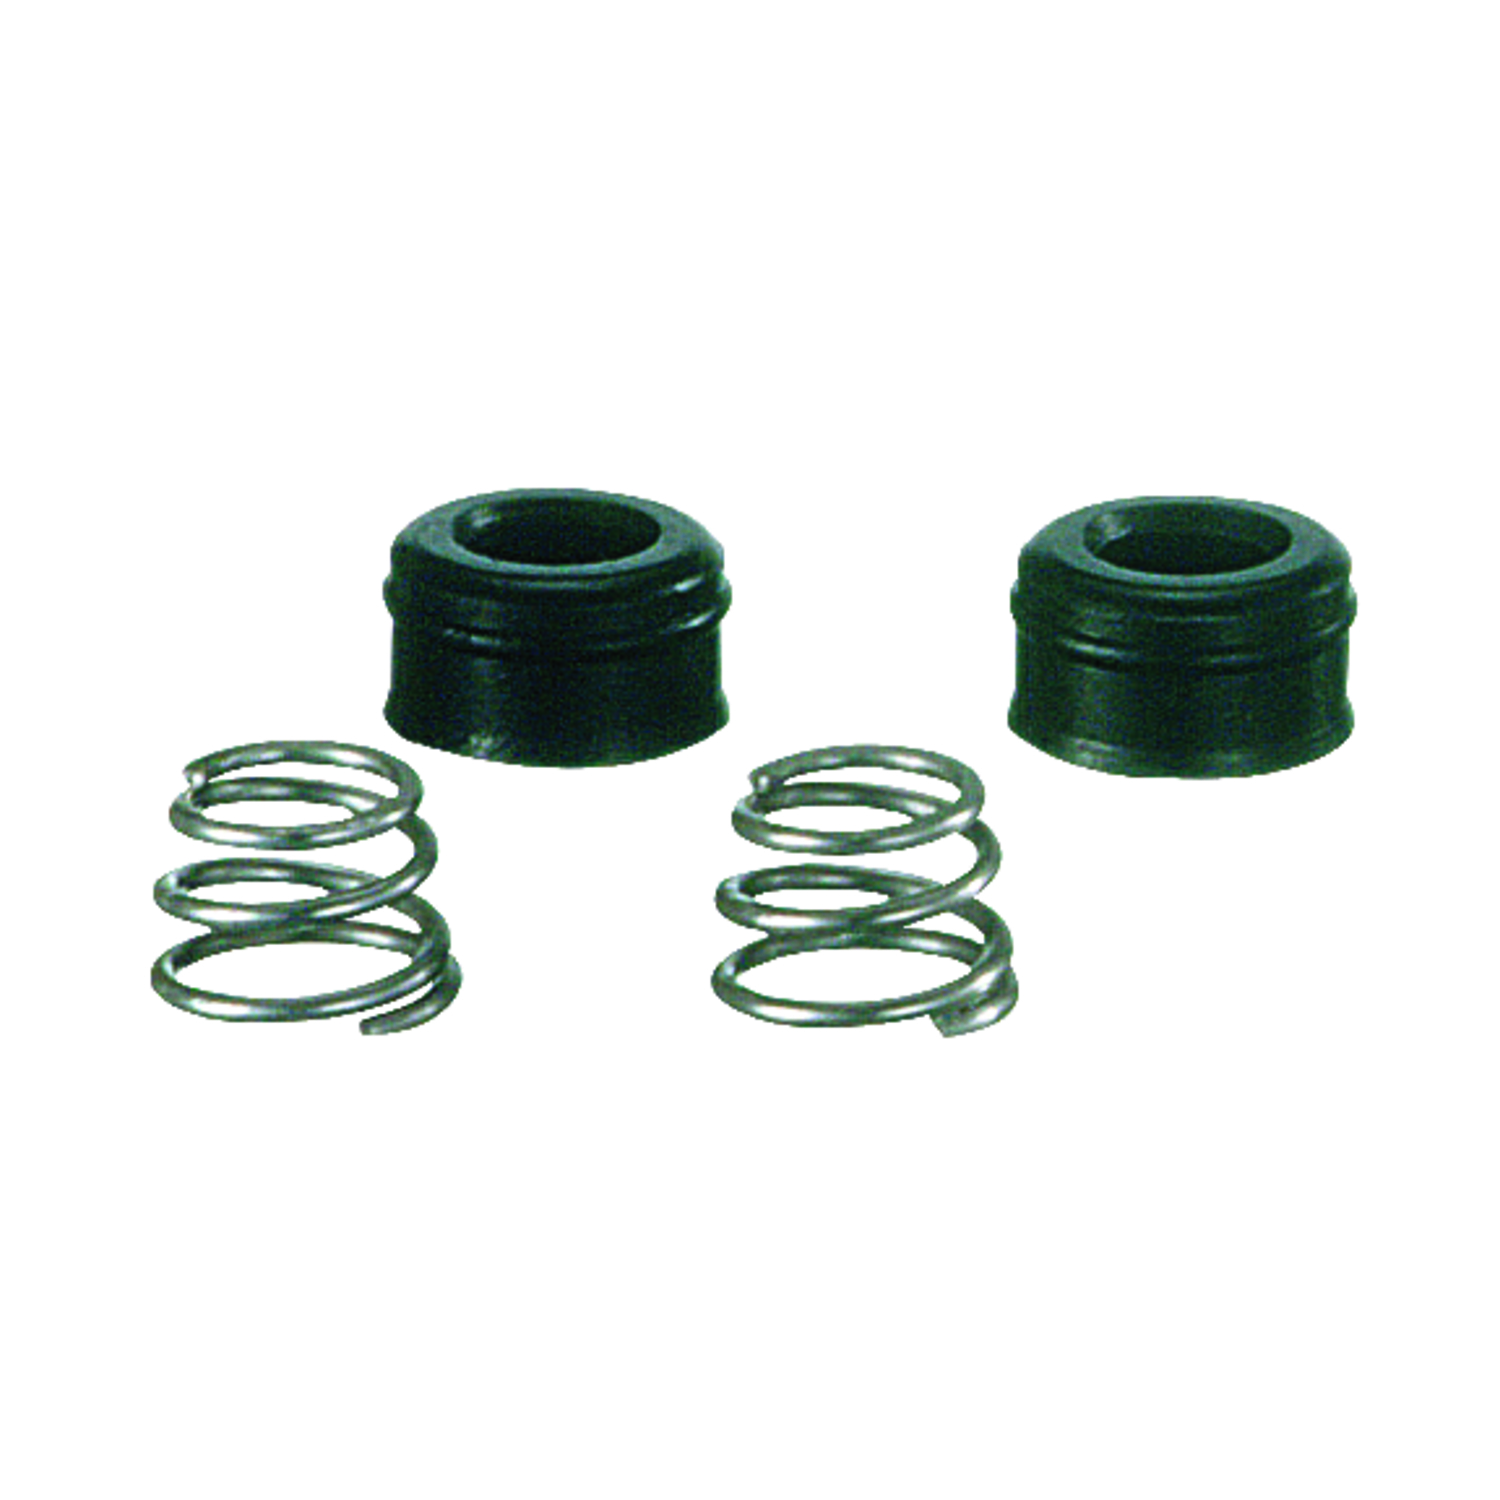 Ace Faucet Seats and Springs Kit - Ace Hardware